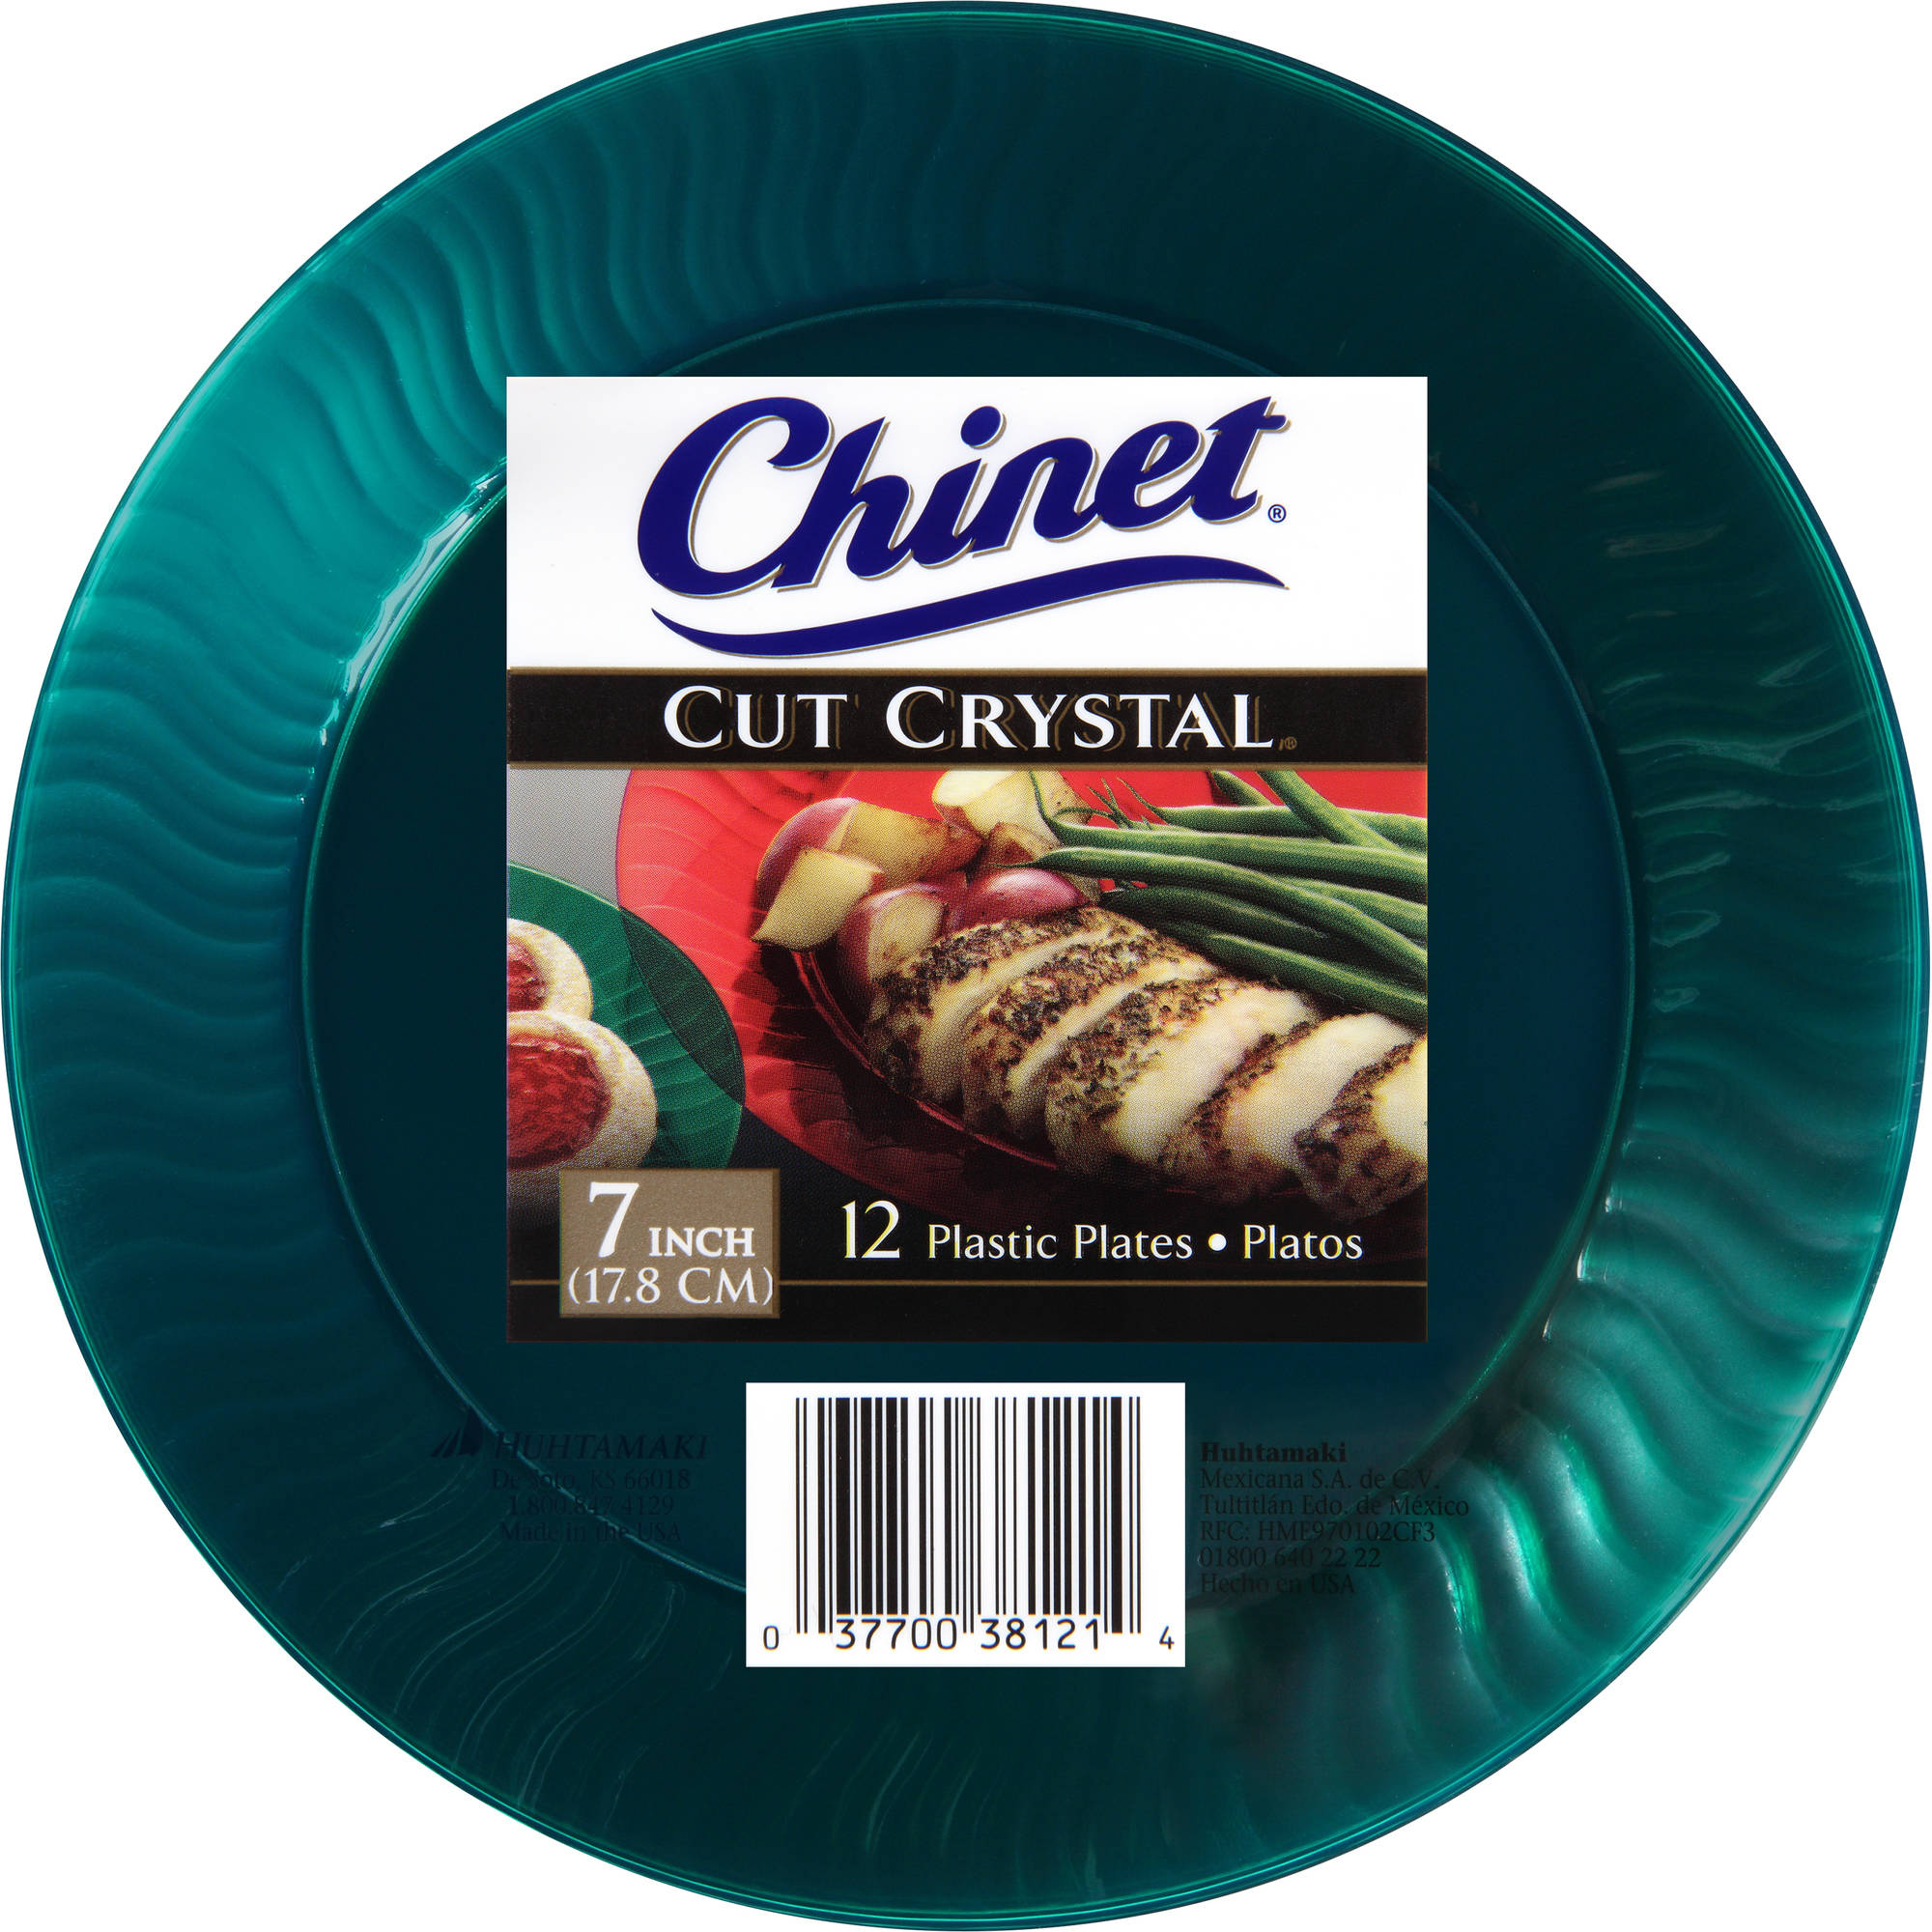 "Chinet Cut Crystal 7"" Plastic Plates, 12 count"